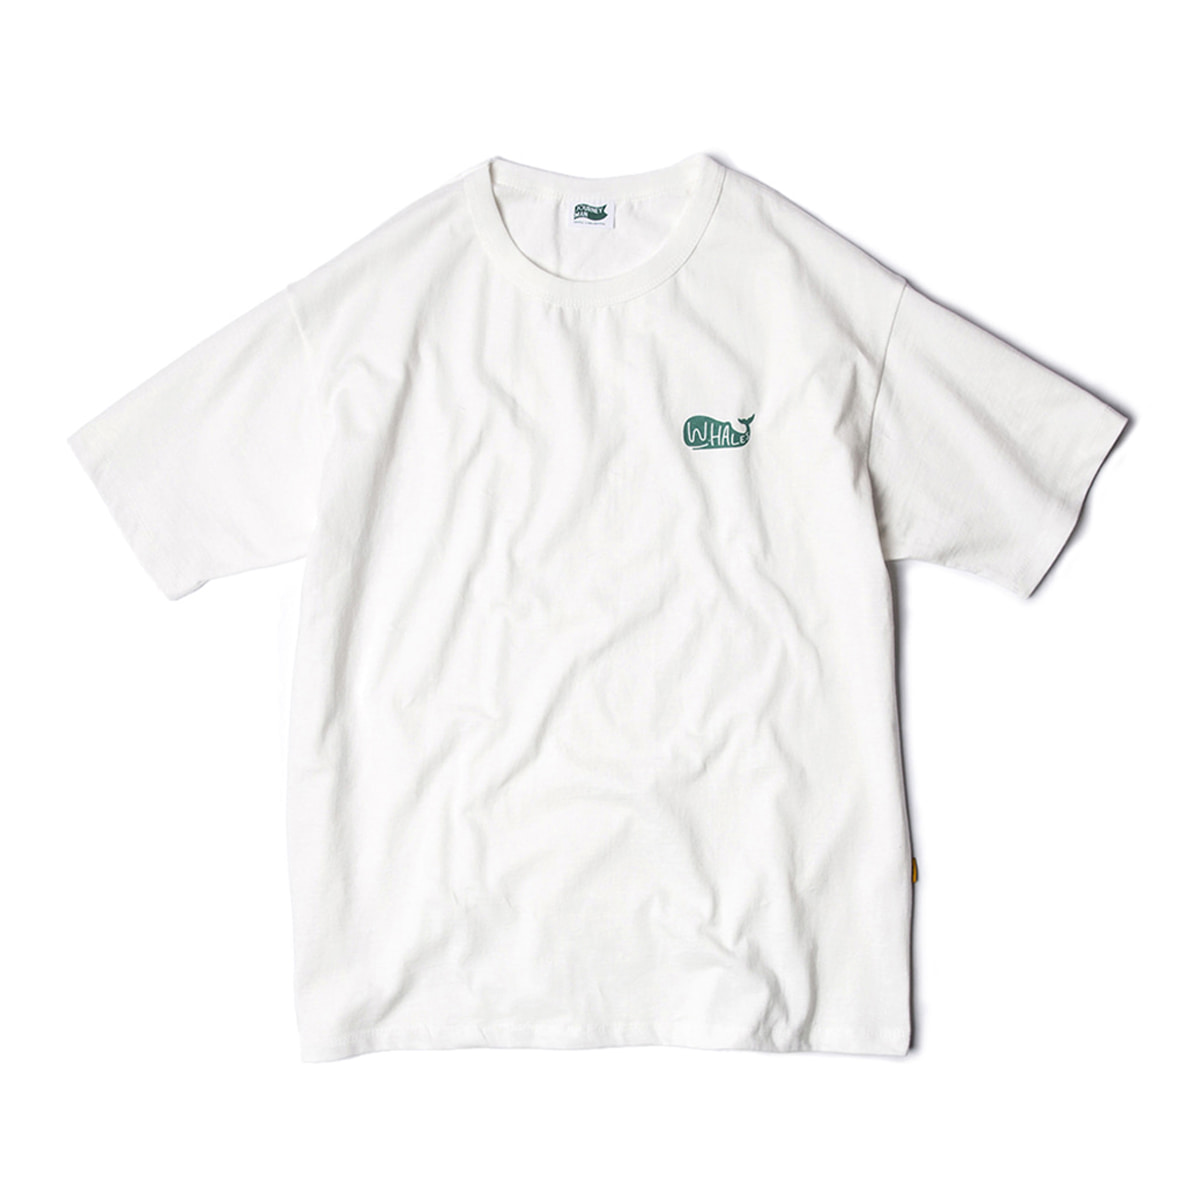 [JOURNEYMAN] WHALE'S SURFER TEAM SMALL LOGO T-SHIRTS 'OFF WHITE'